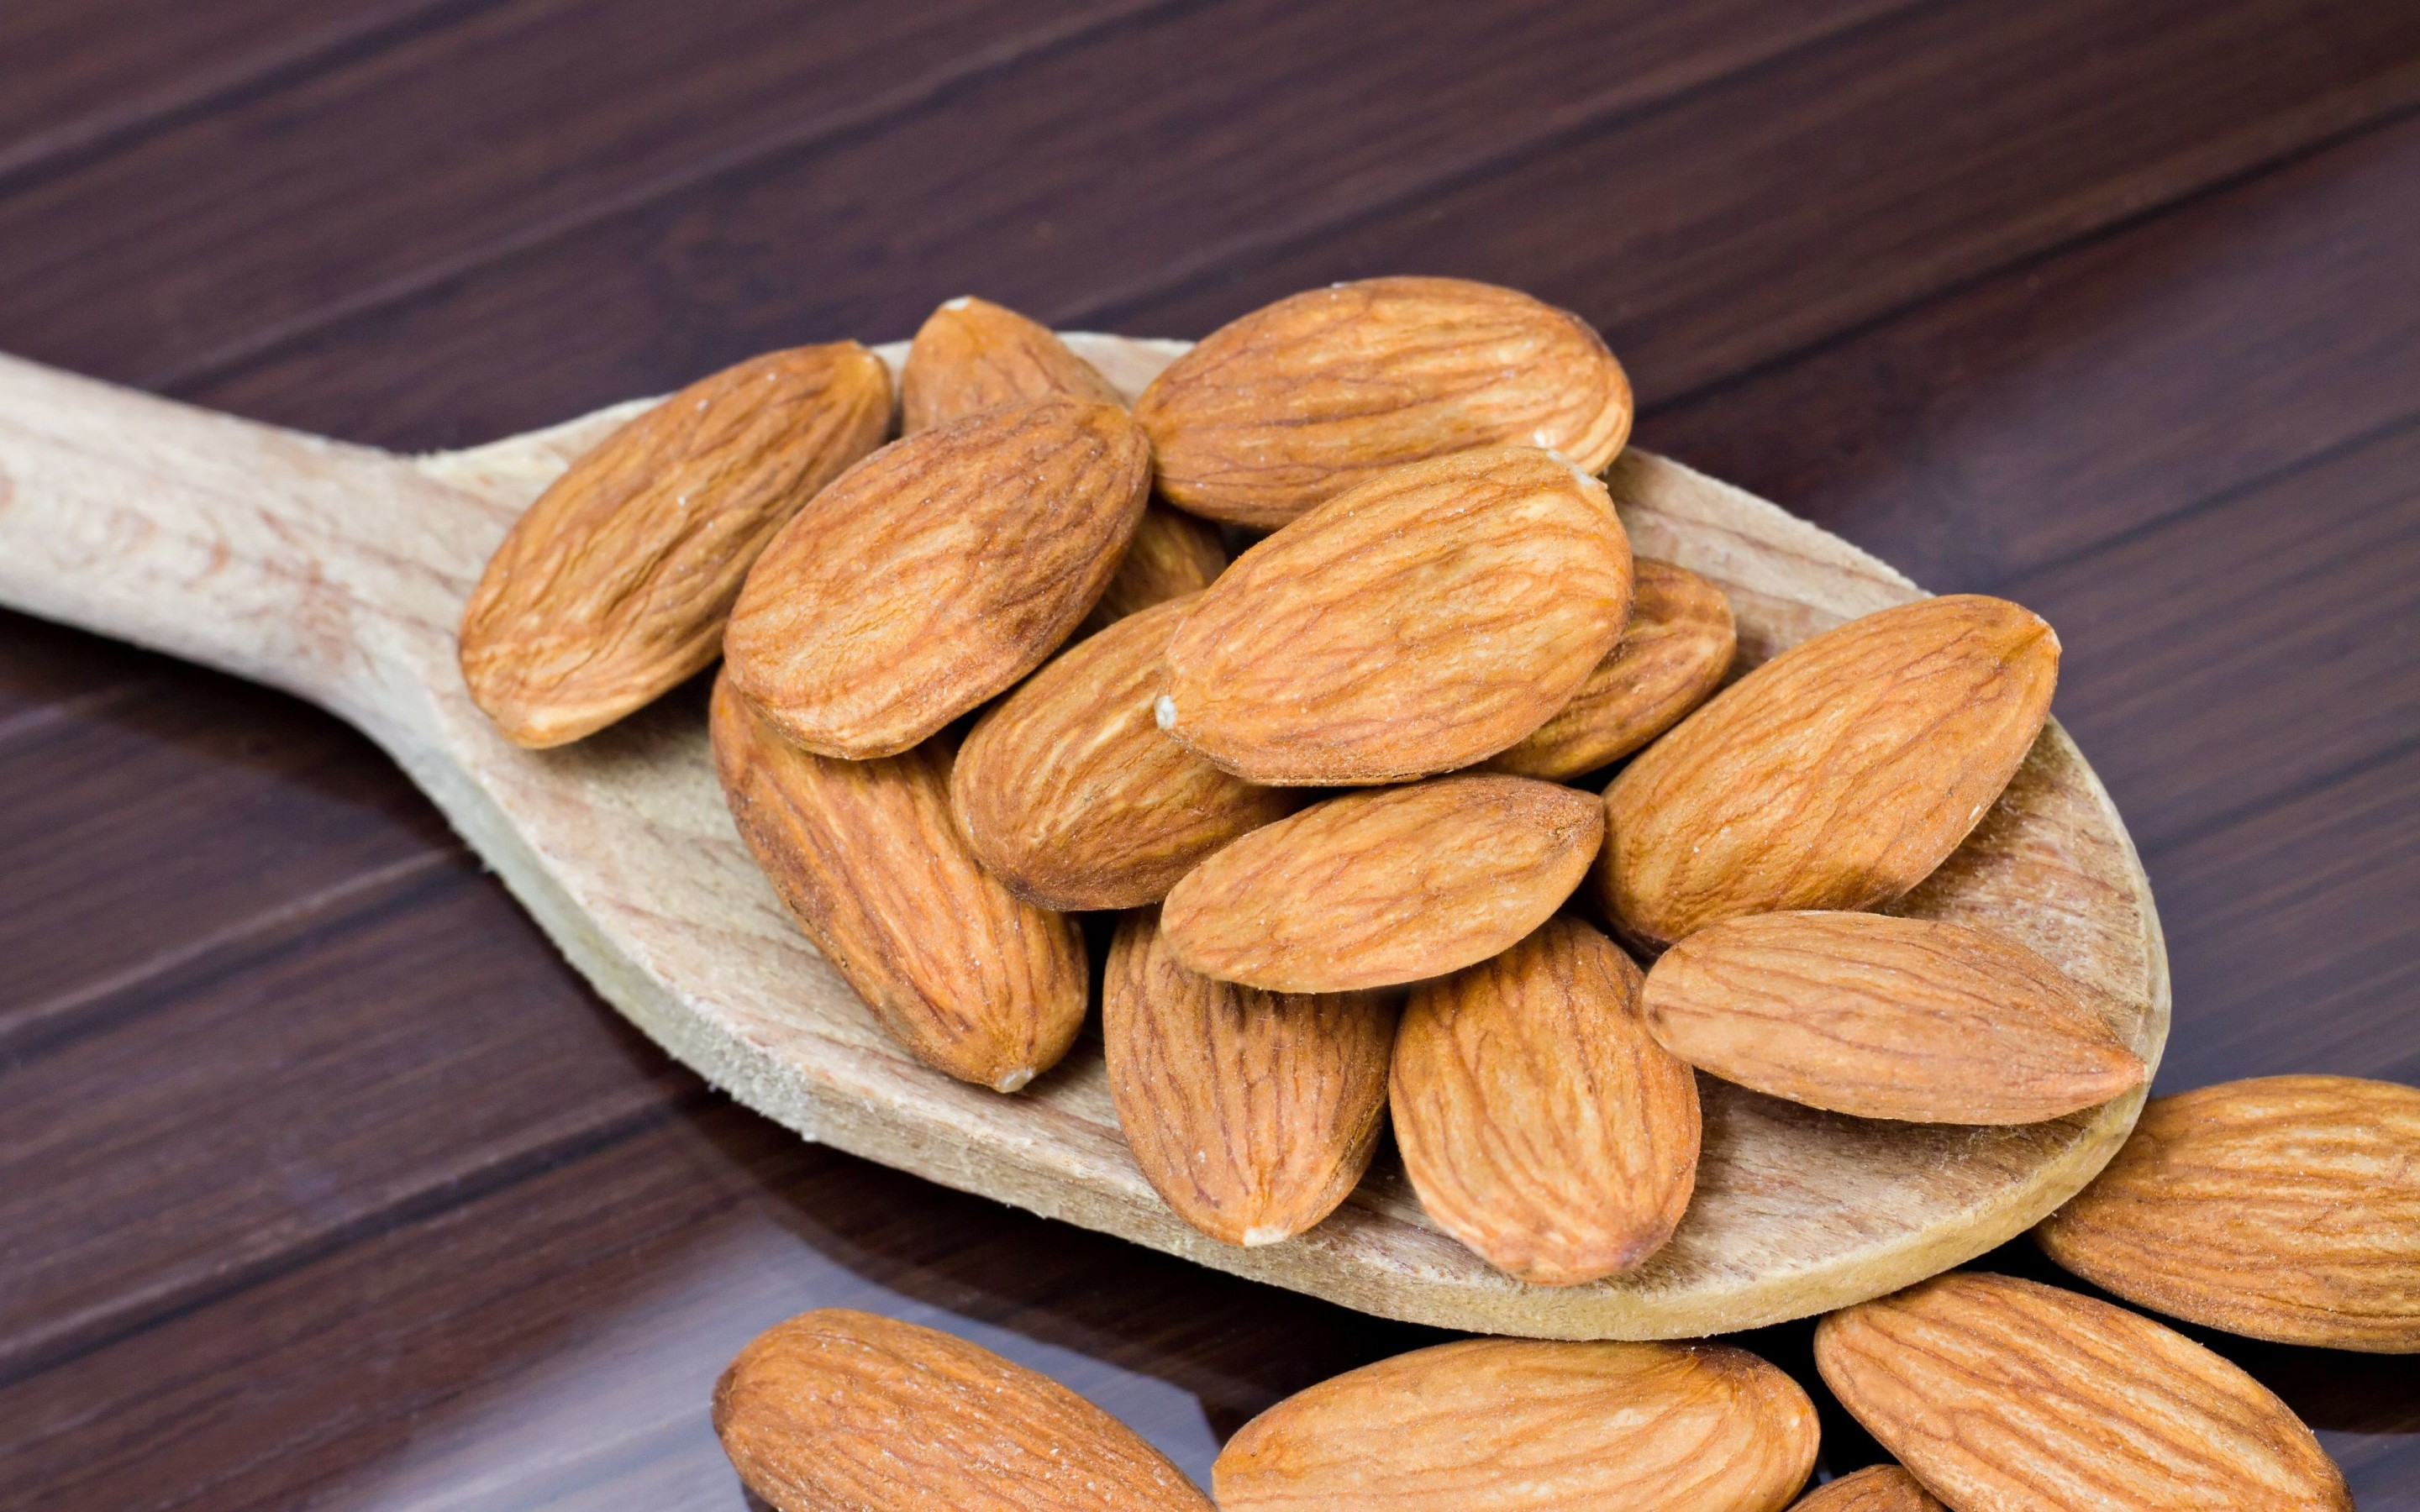 almonds nuts widescreen wallpaper 52115